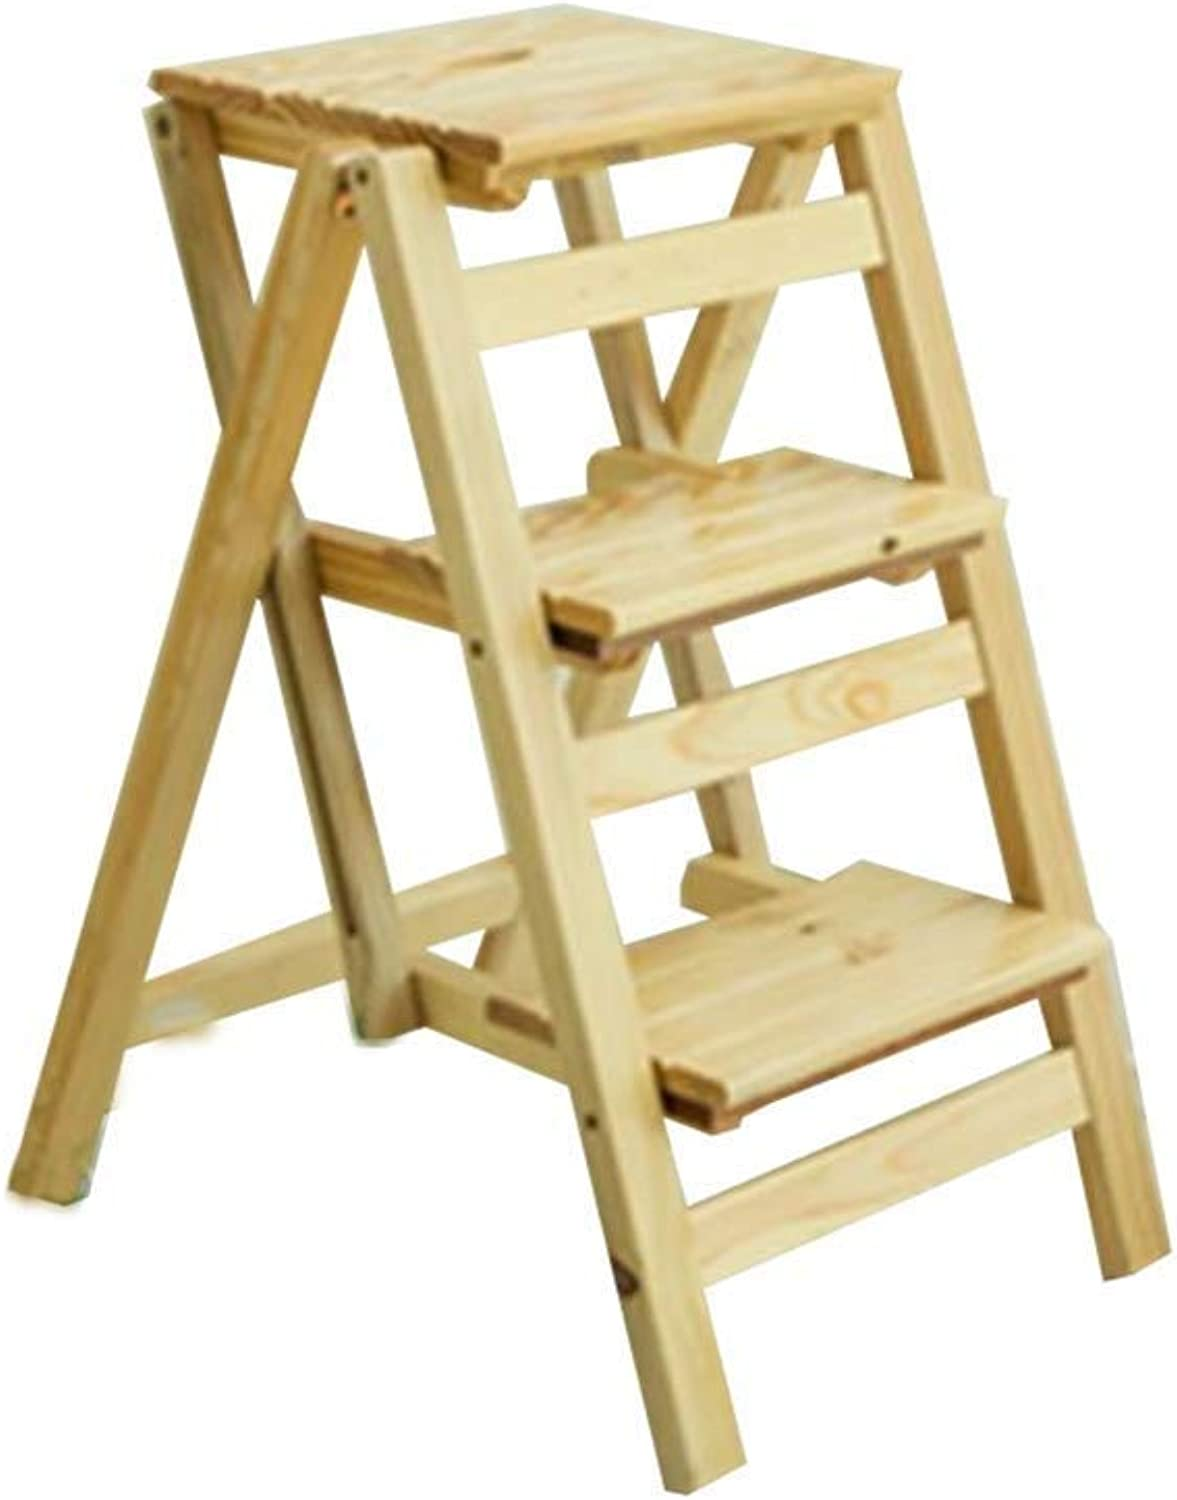 SCBED Multifunction Folding Wood Ladder Stool   3 Tier Stepladder Stairway Chair   Portable shoes Bench Flower Rack   for Adults & Kids, Max Load 150kg (color   B)